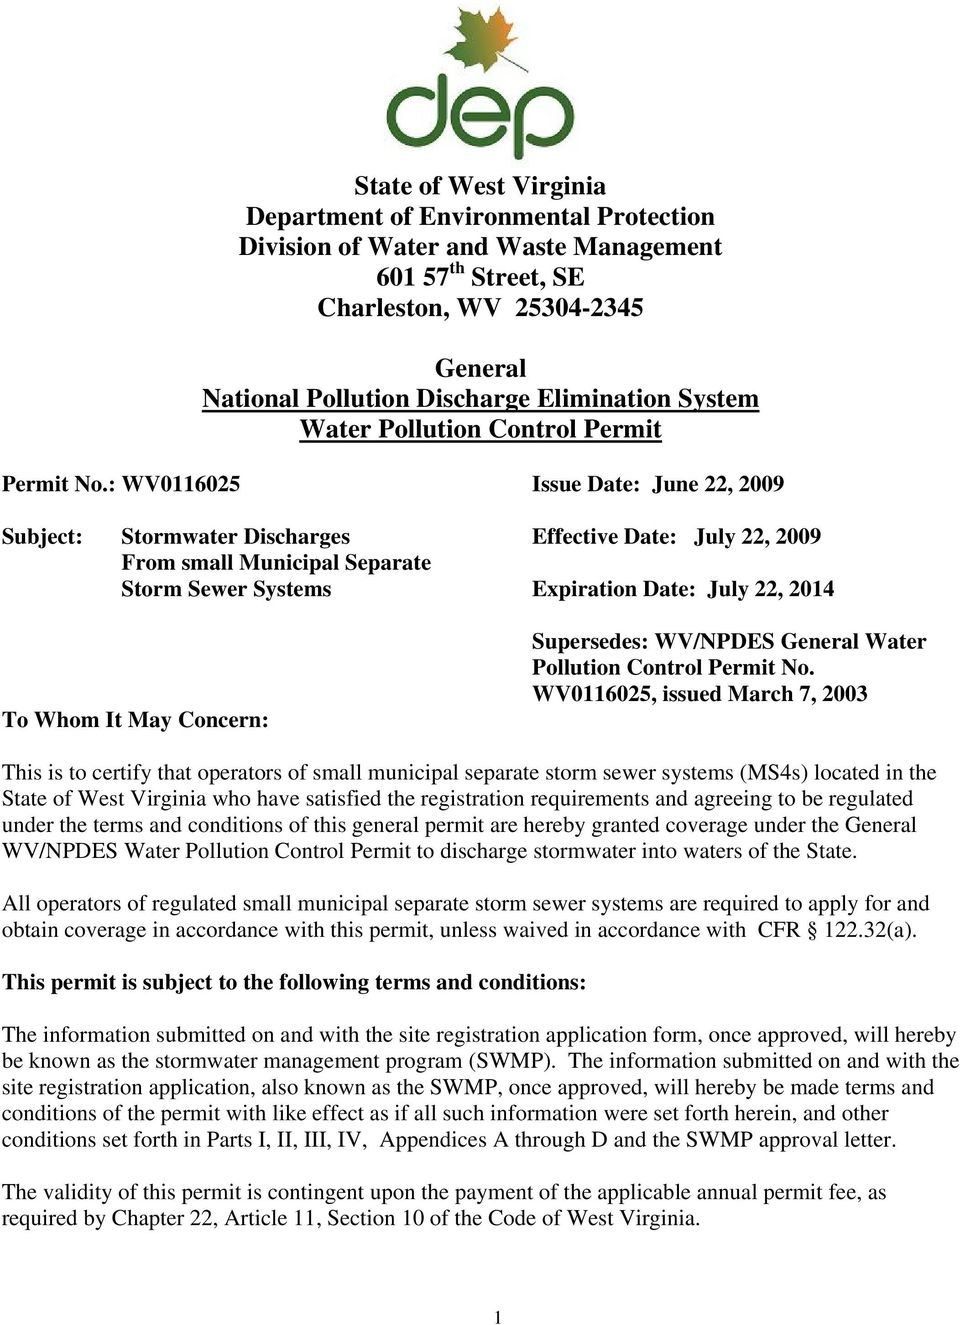 : WV0116025 Issue Date: June 22, 2009 Subject: Stormwater Discharges Effective Date: July 22, 2009 From small Municipal Separate Storm Sewer Systems Expiration Date: July 22, 2014 To Whom It May